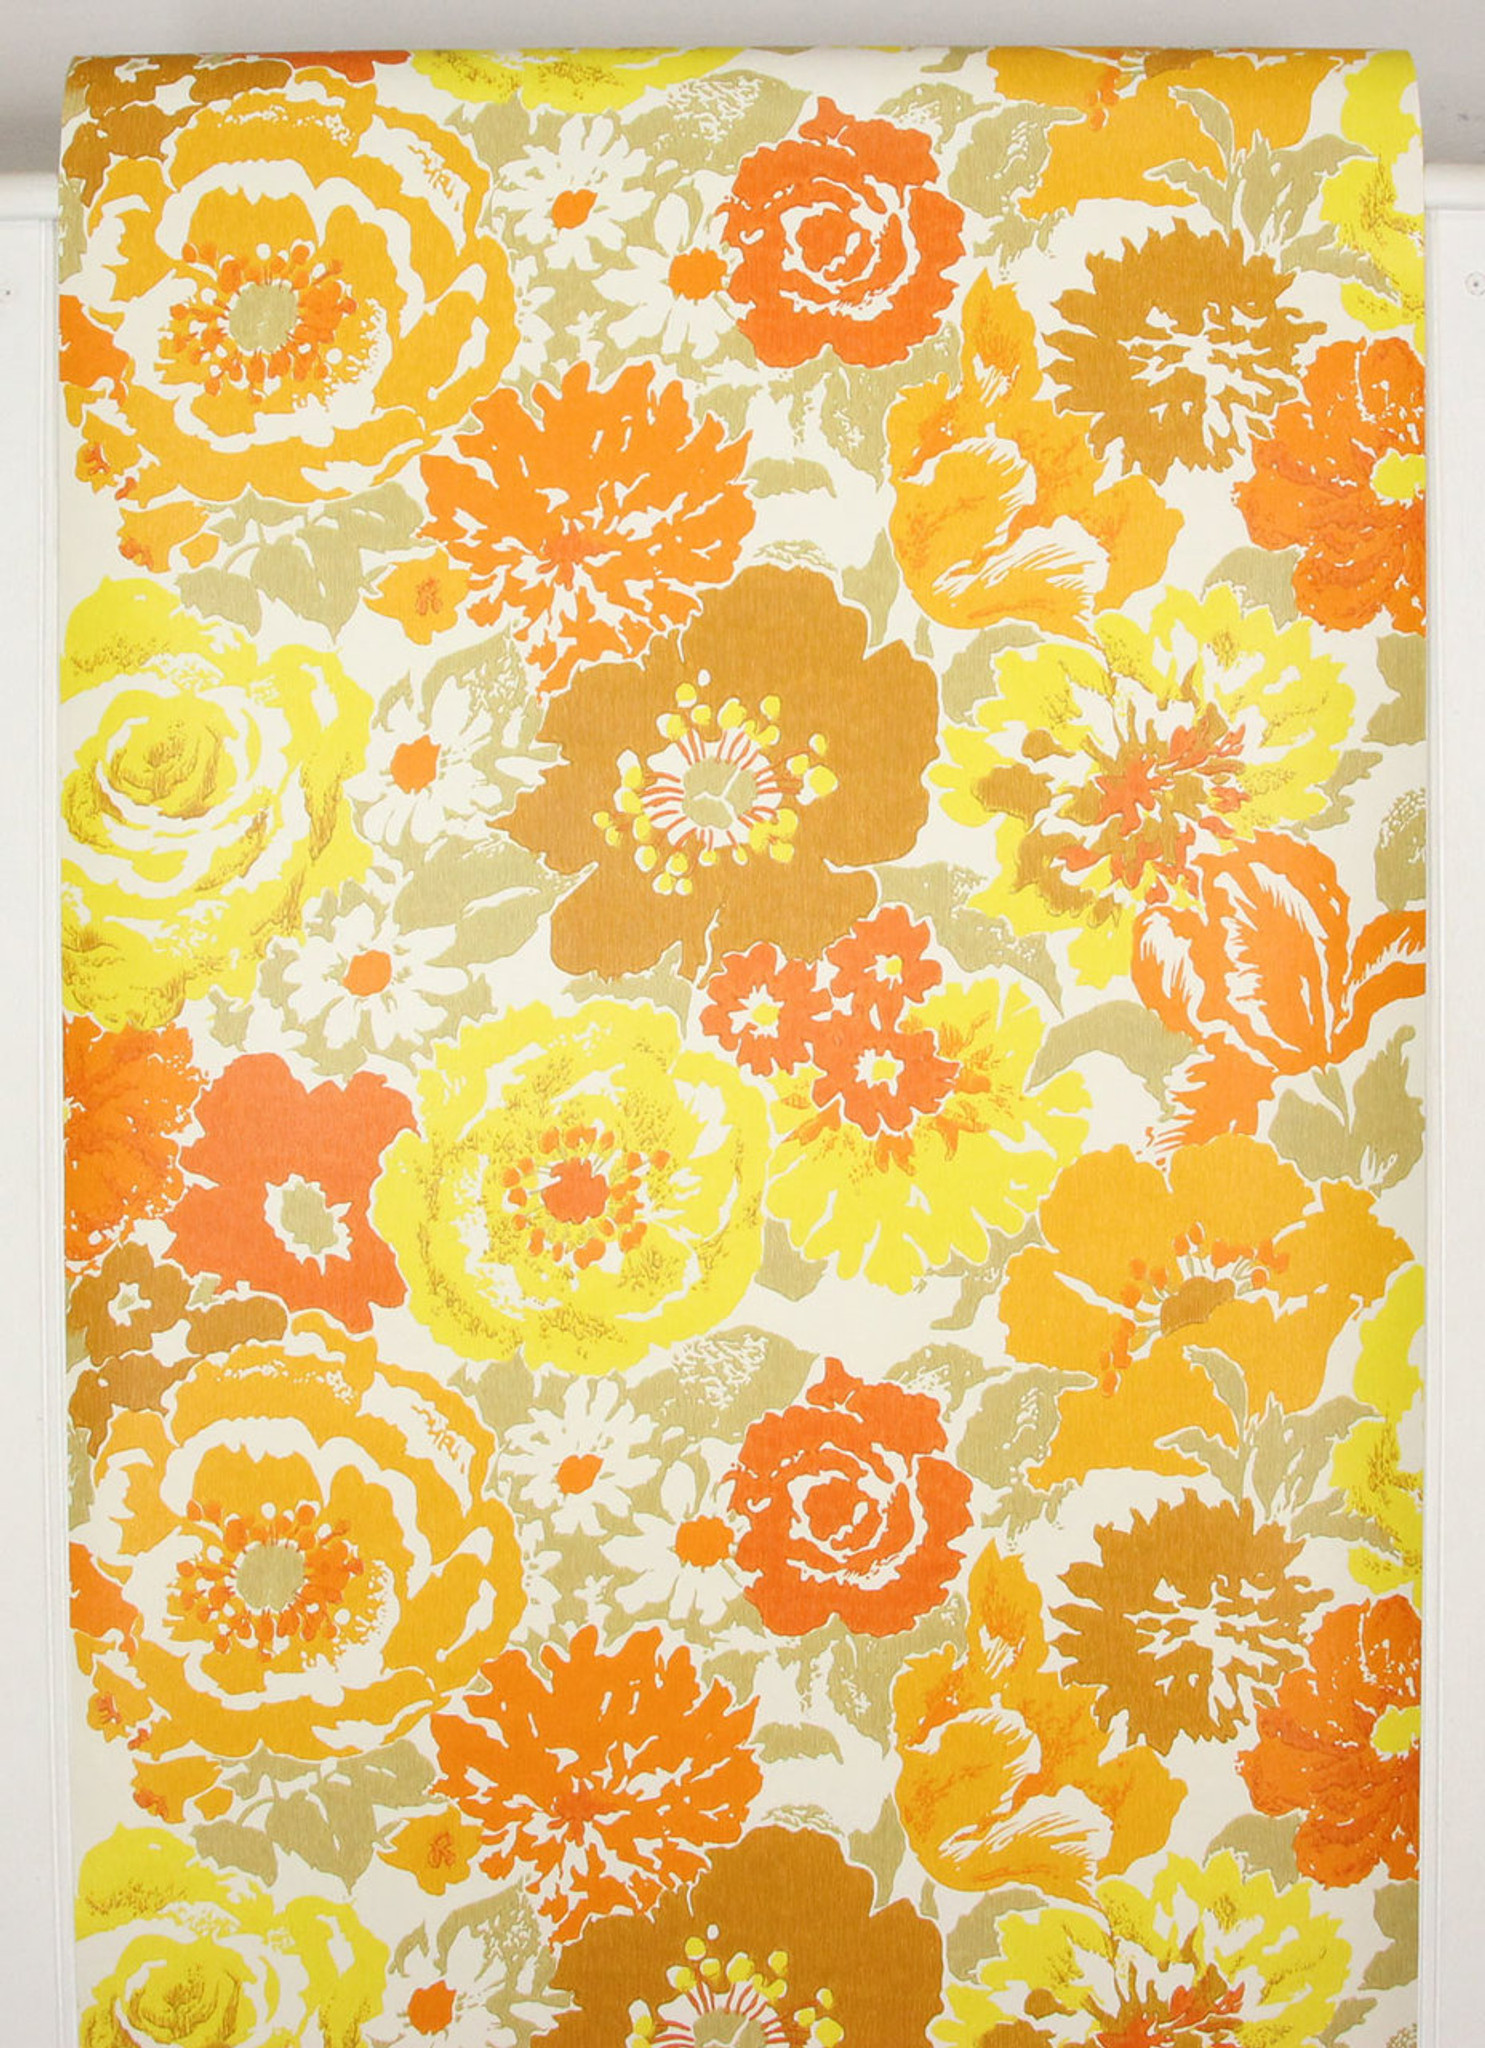 1970s Vintage Wallpaper Retro Brown Orange And Yellow